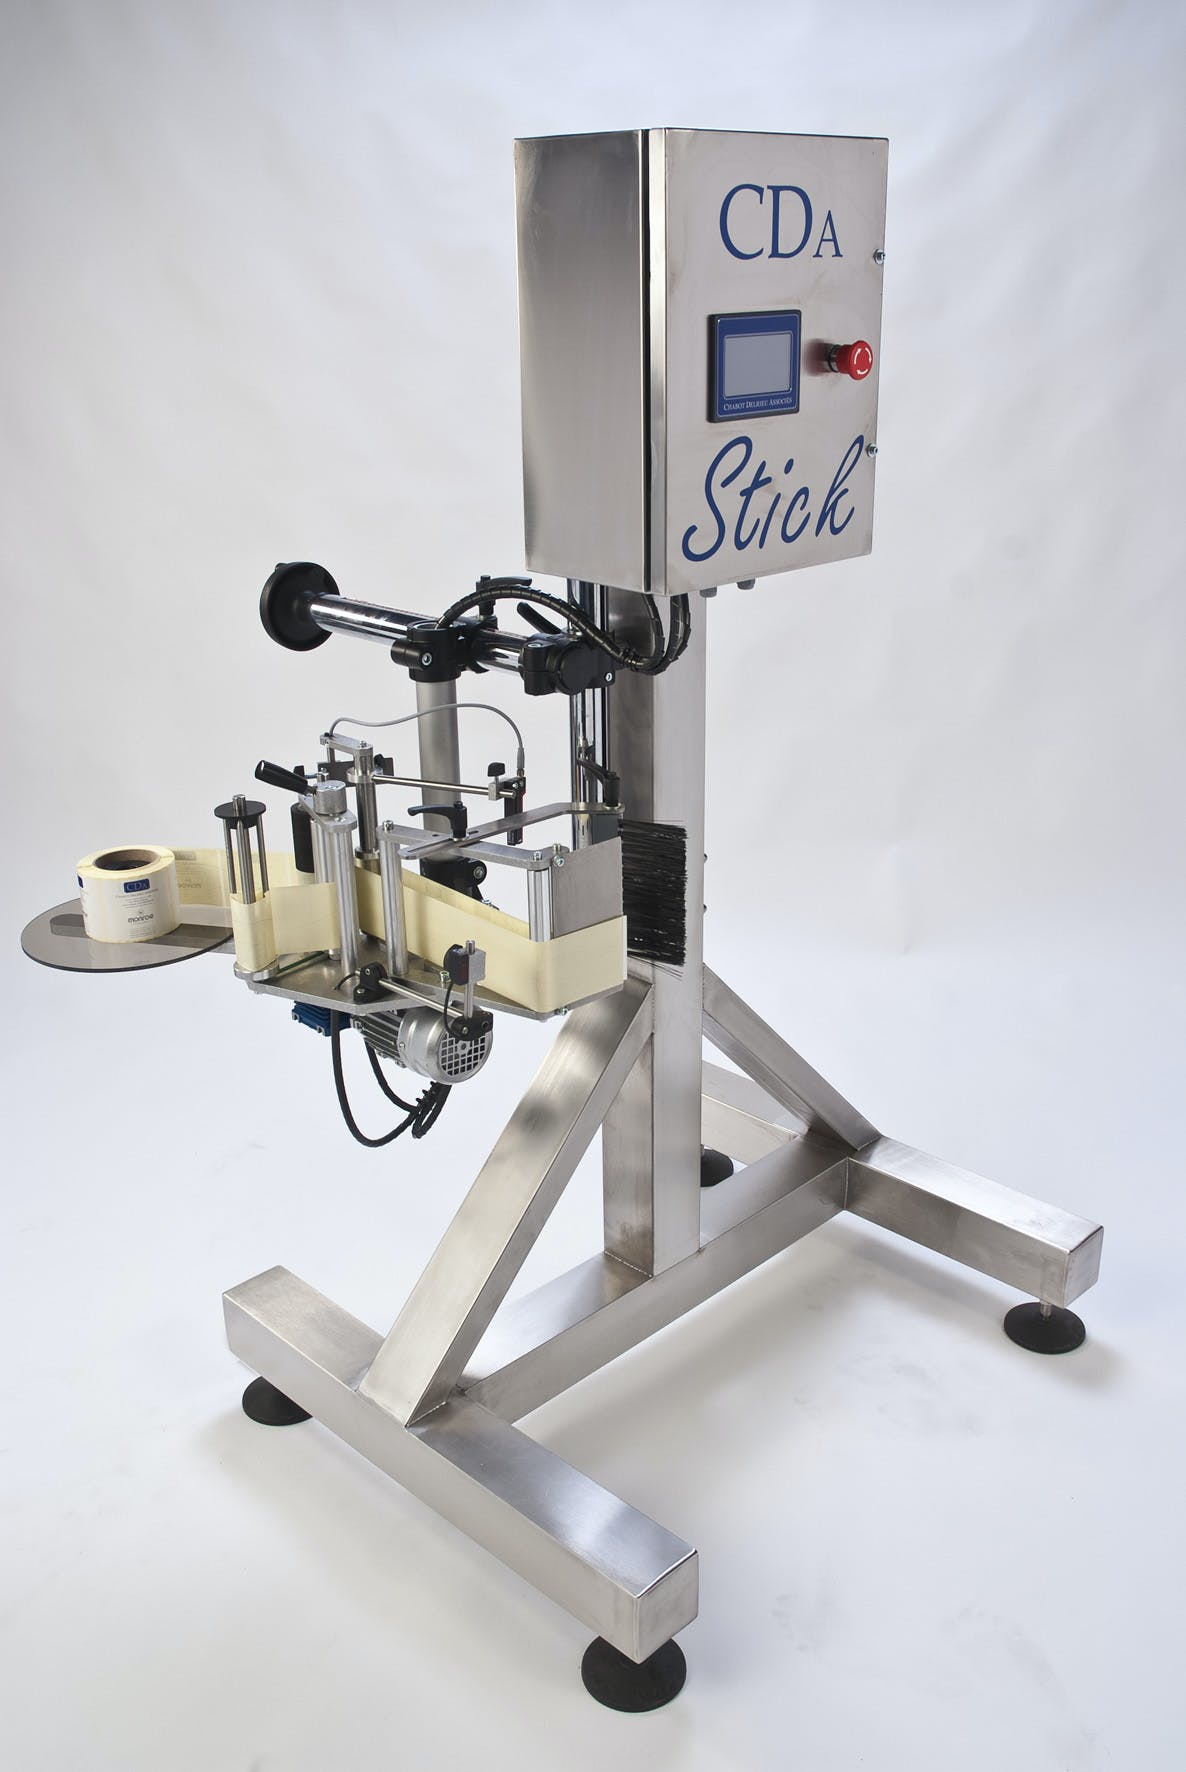 Stick Bottle labeler sold by CDA USA Inc,